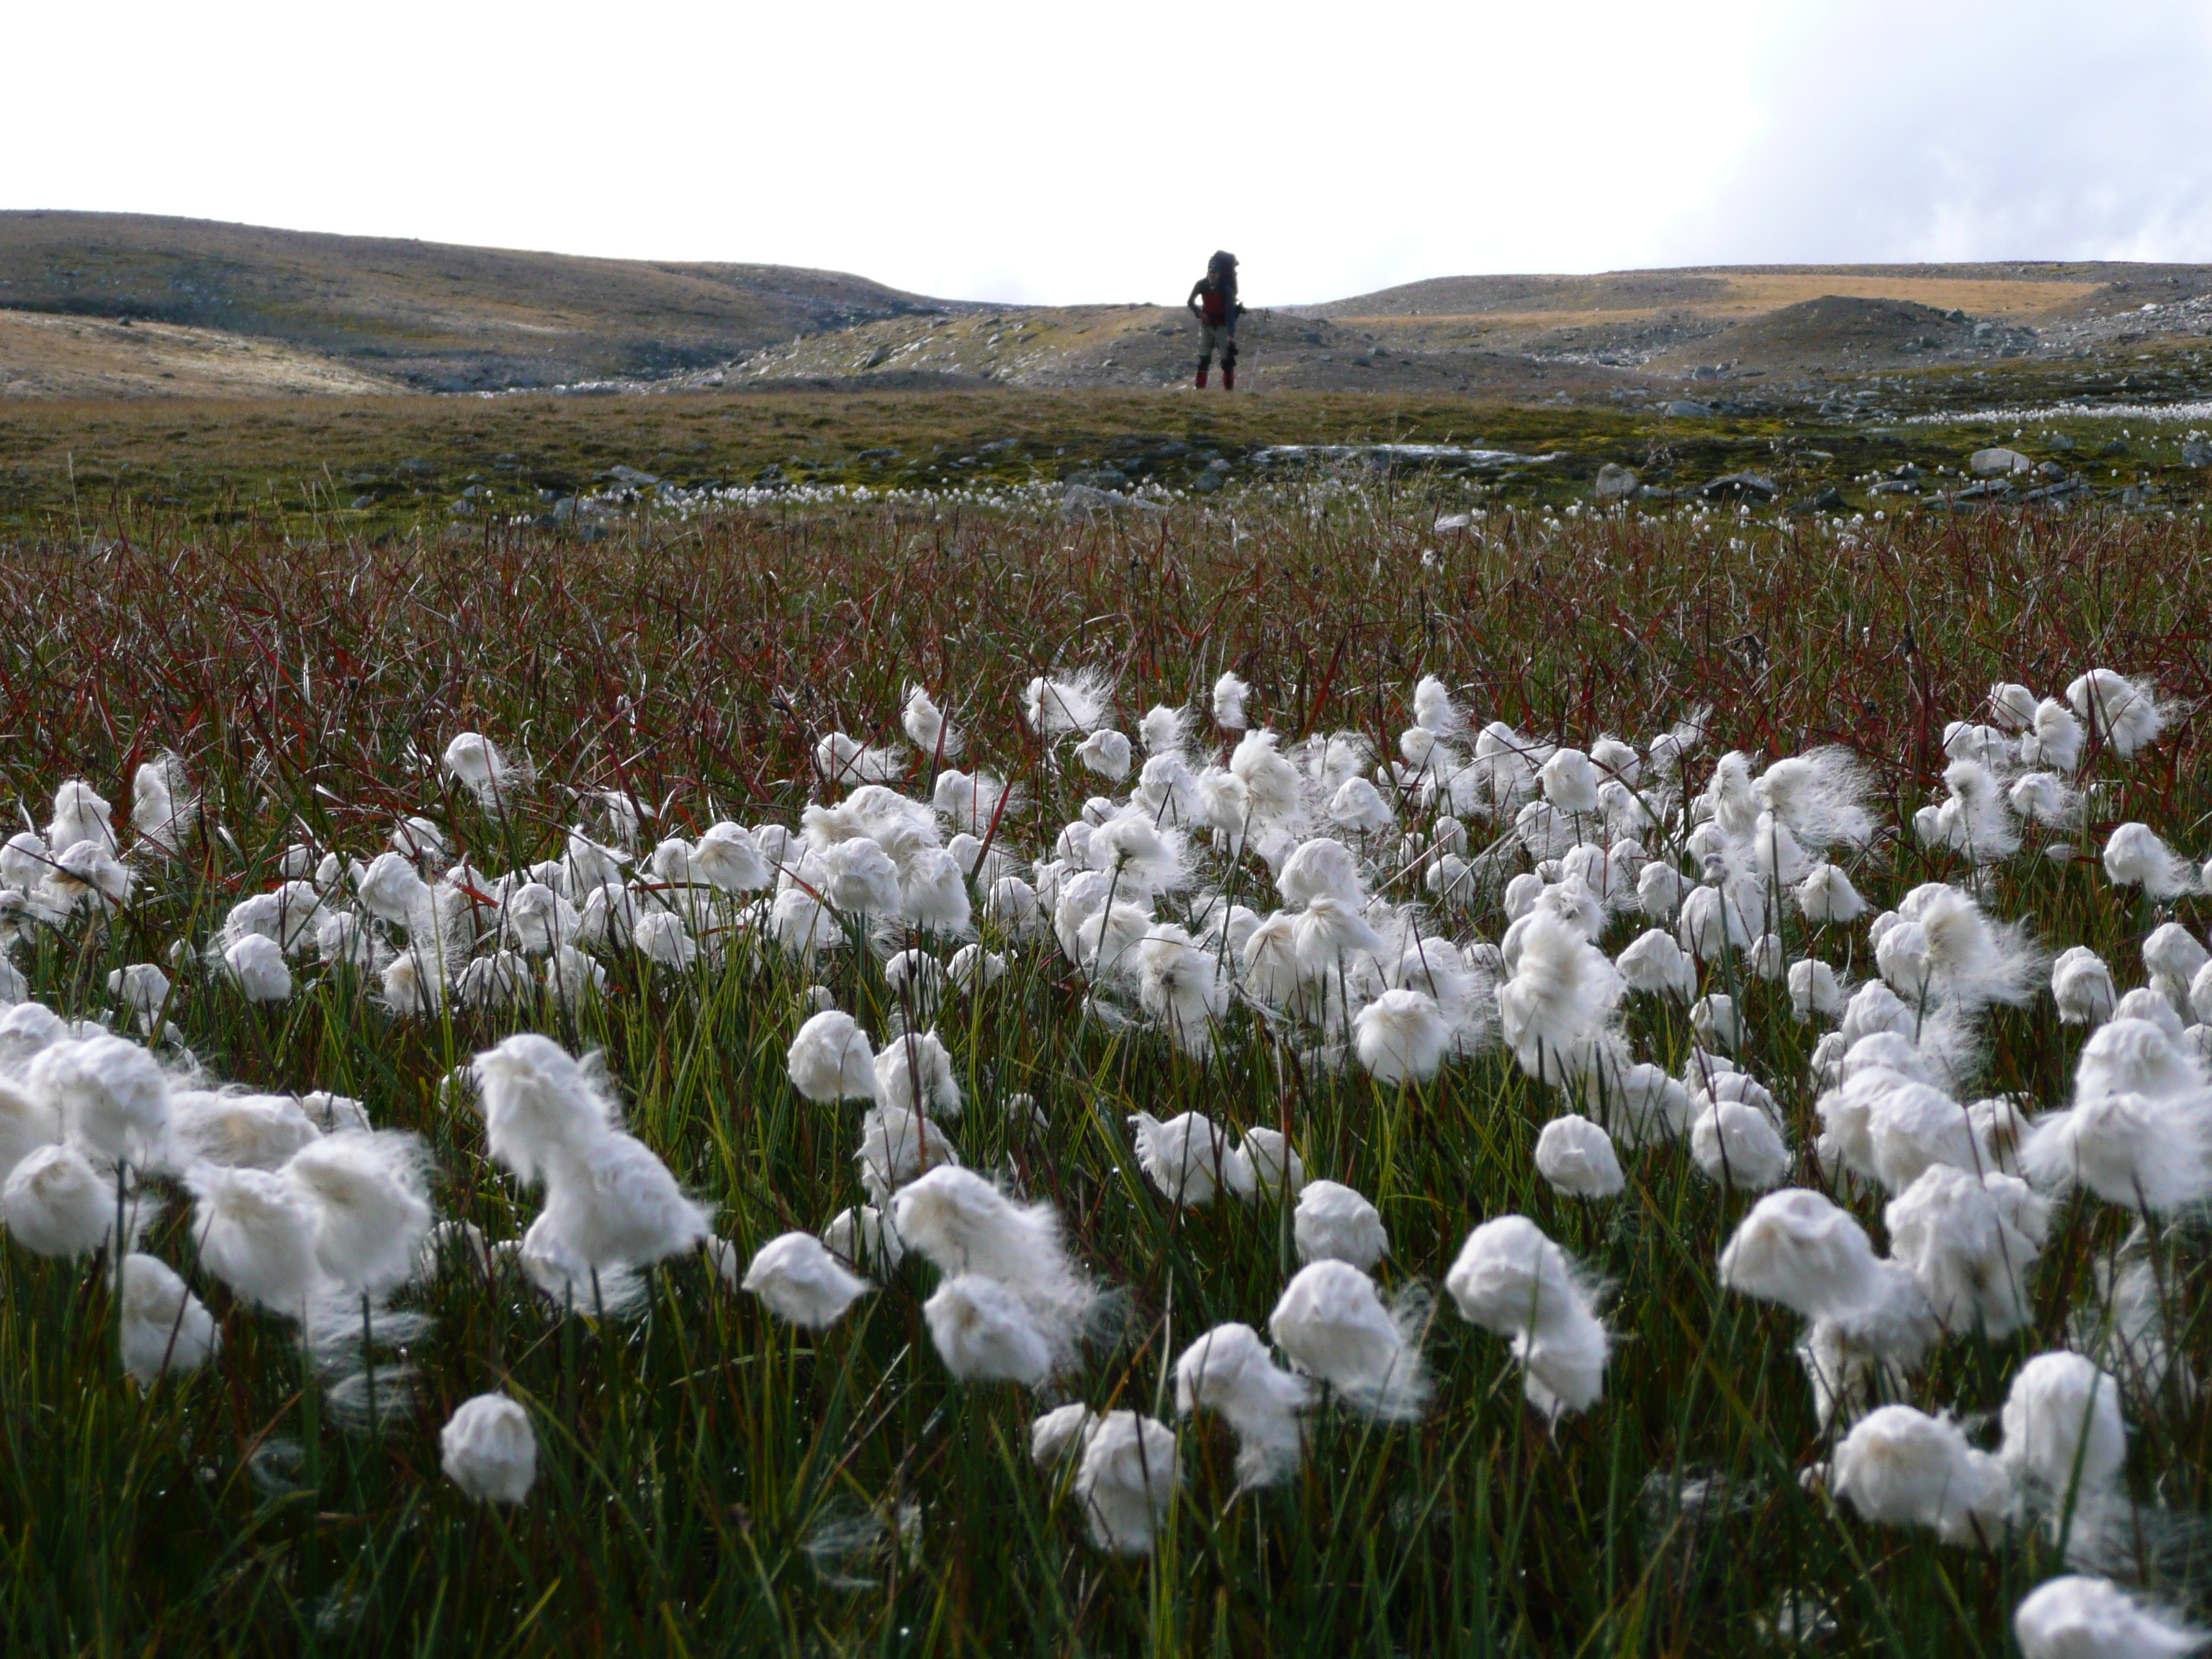 File:Sarek cotton grass.jpg